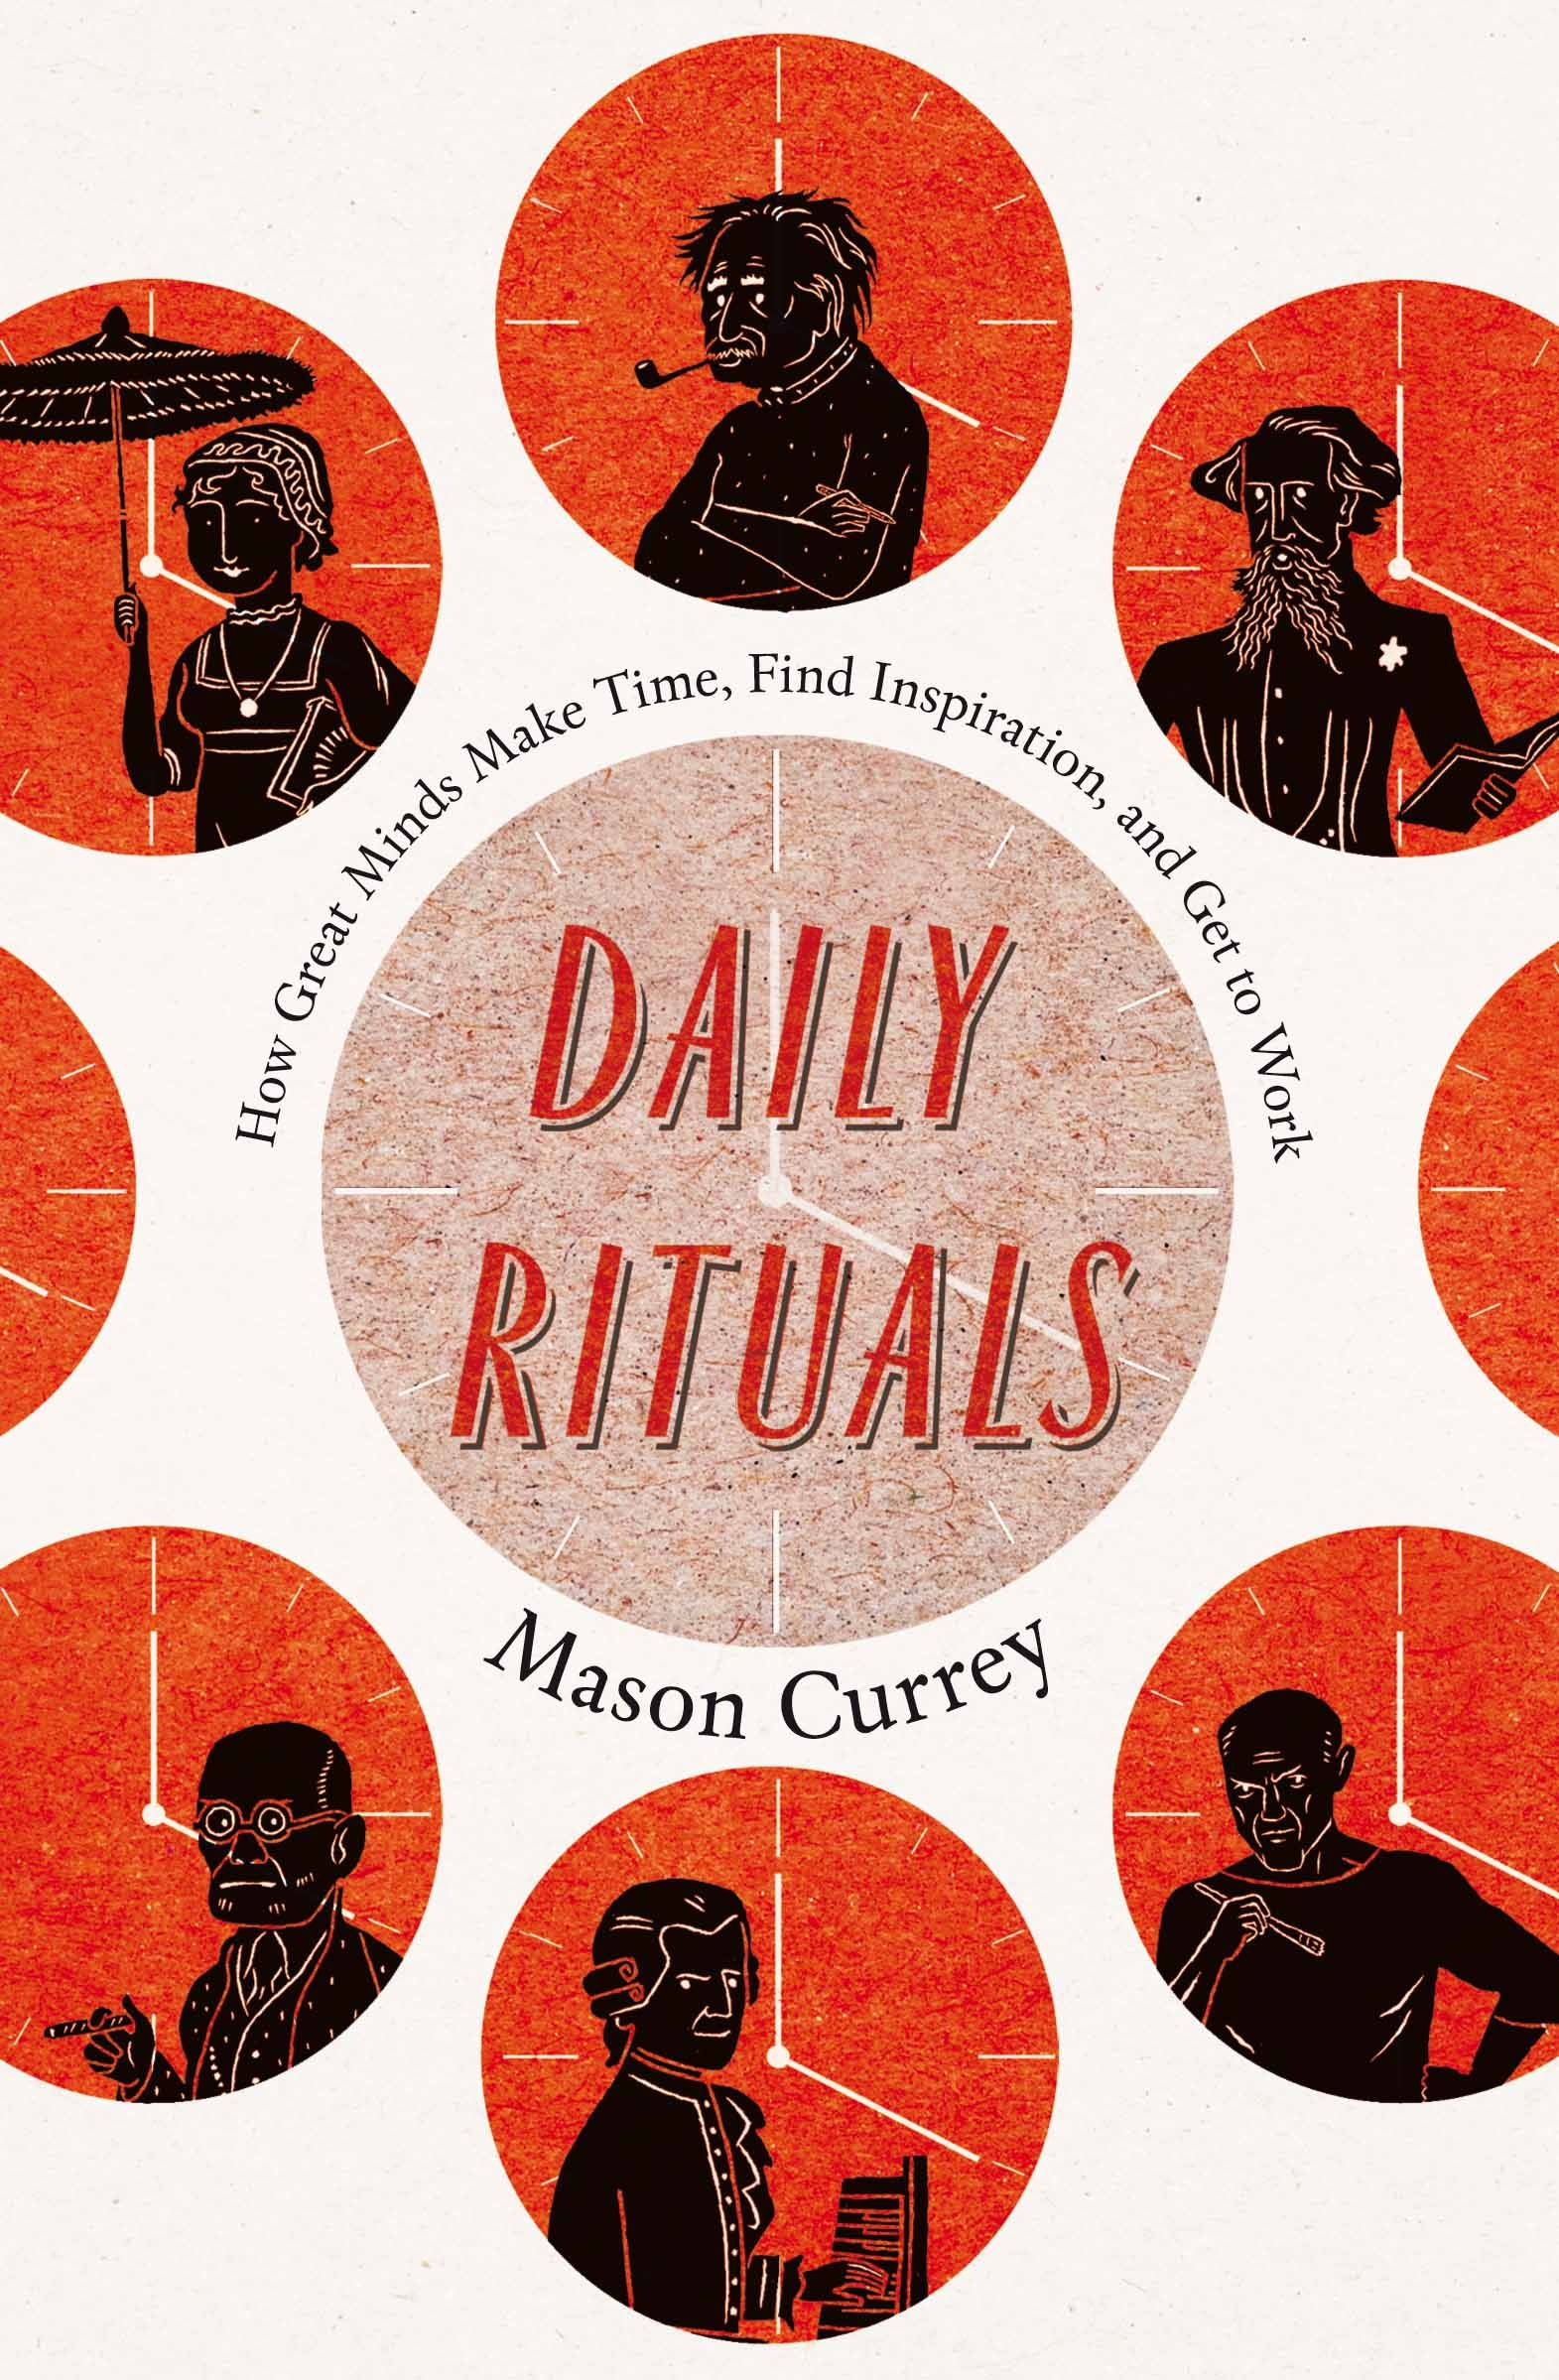 Daily rituals by mason currey october 2013 routine